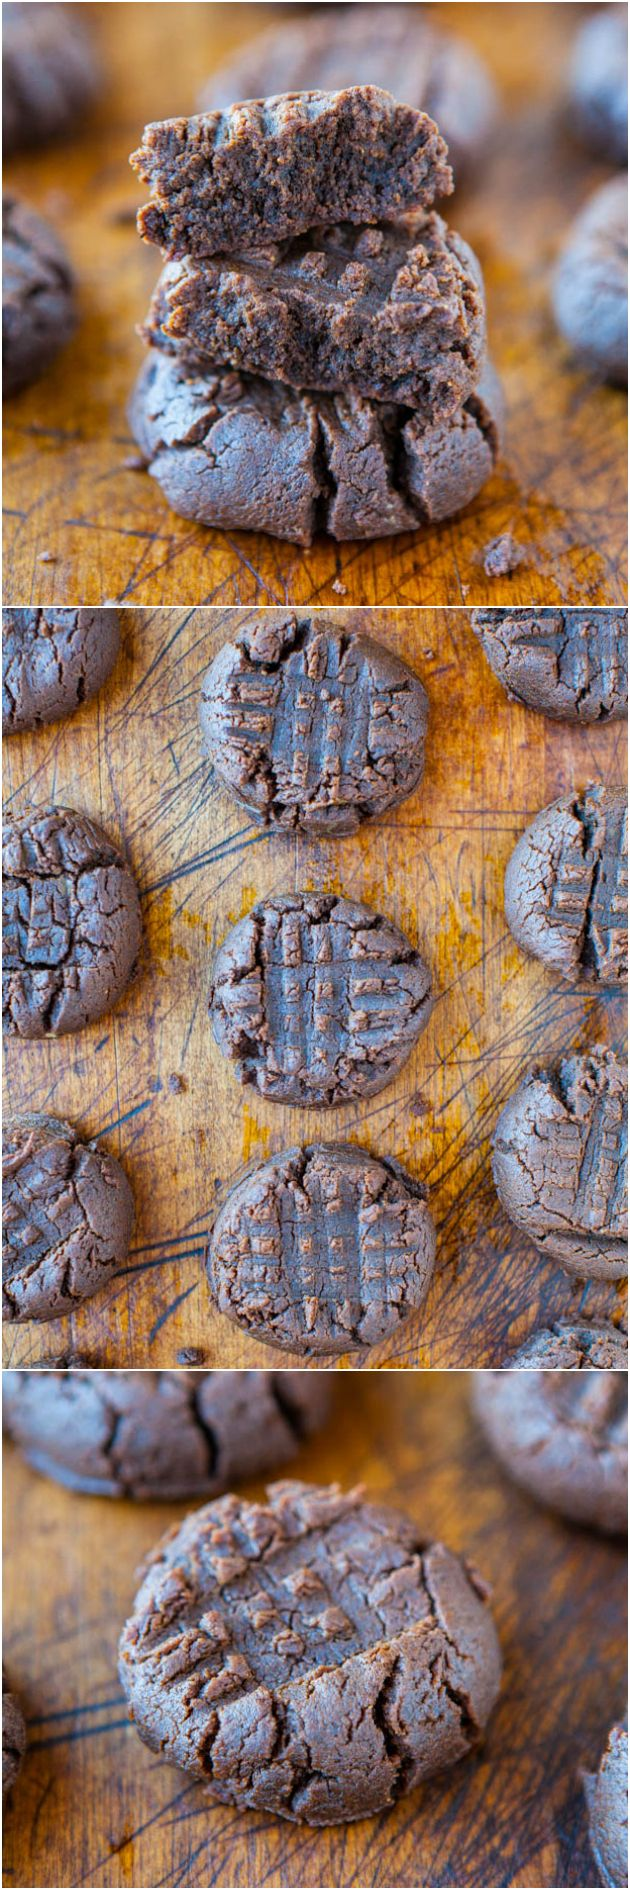 silk screen printing Thick and Soft Chocolate Peanut Butter Cookies glutenfree  Recipe